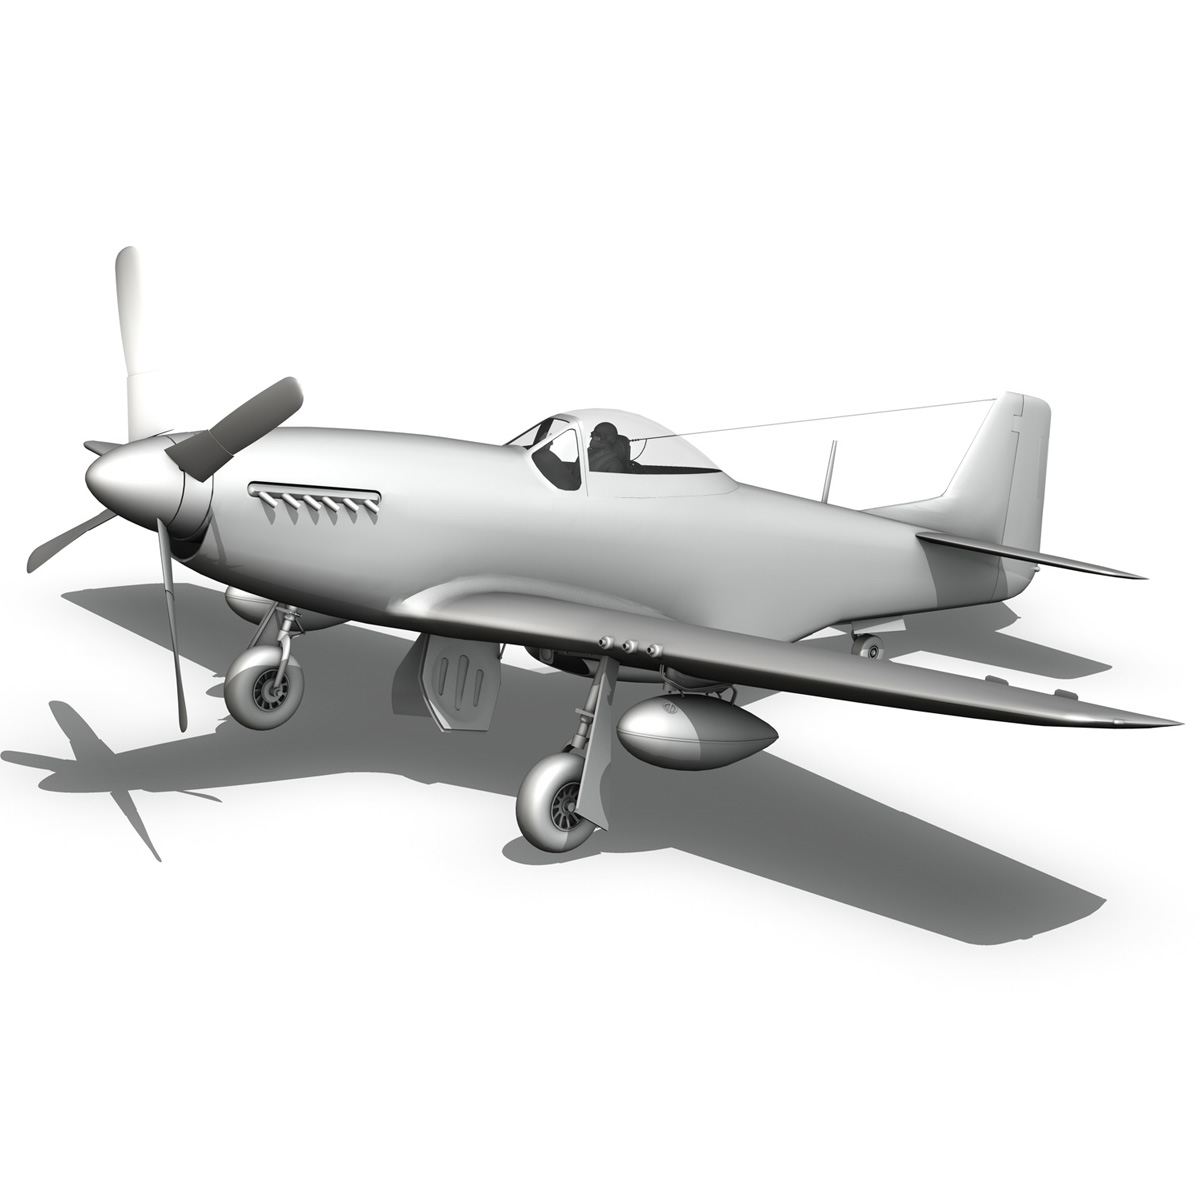 north american p-51d mustang – speedball alice 3d model fbx c4d lwo obj 280328